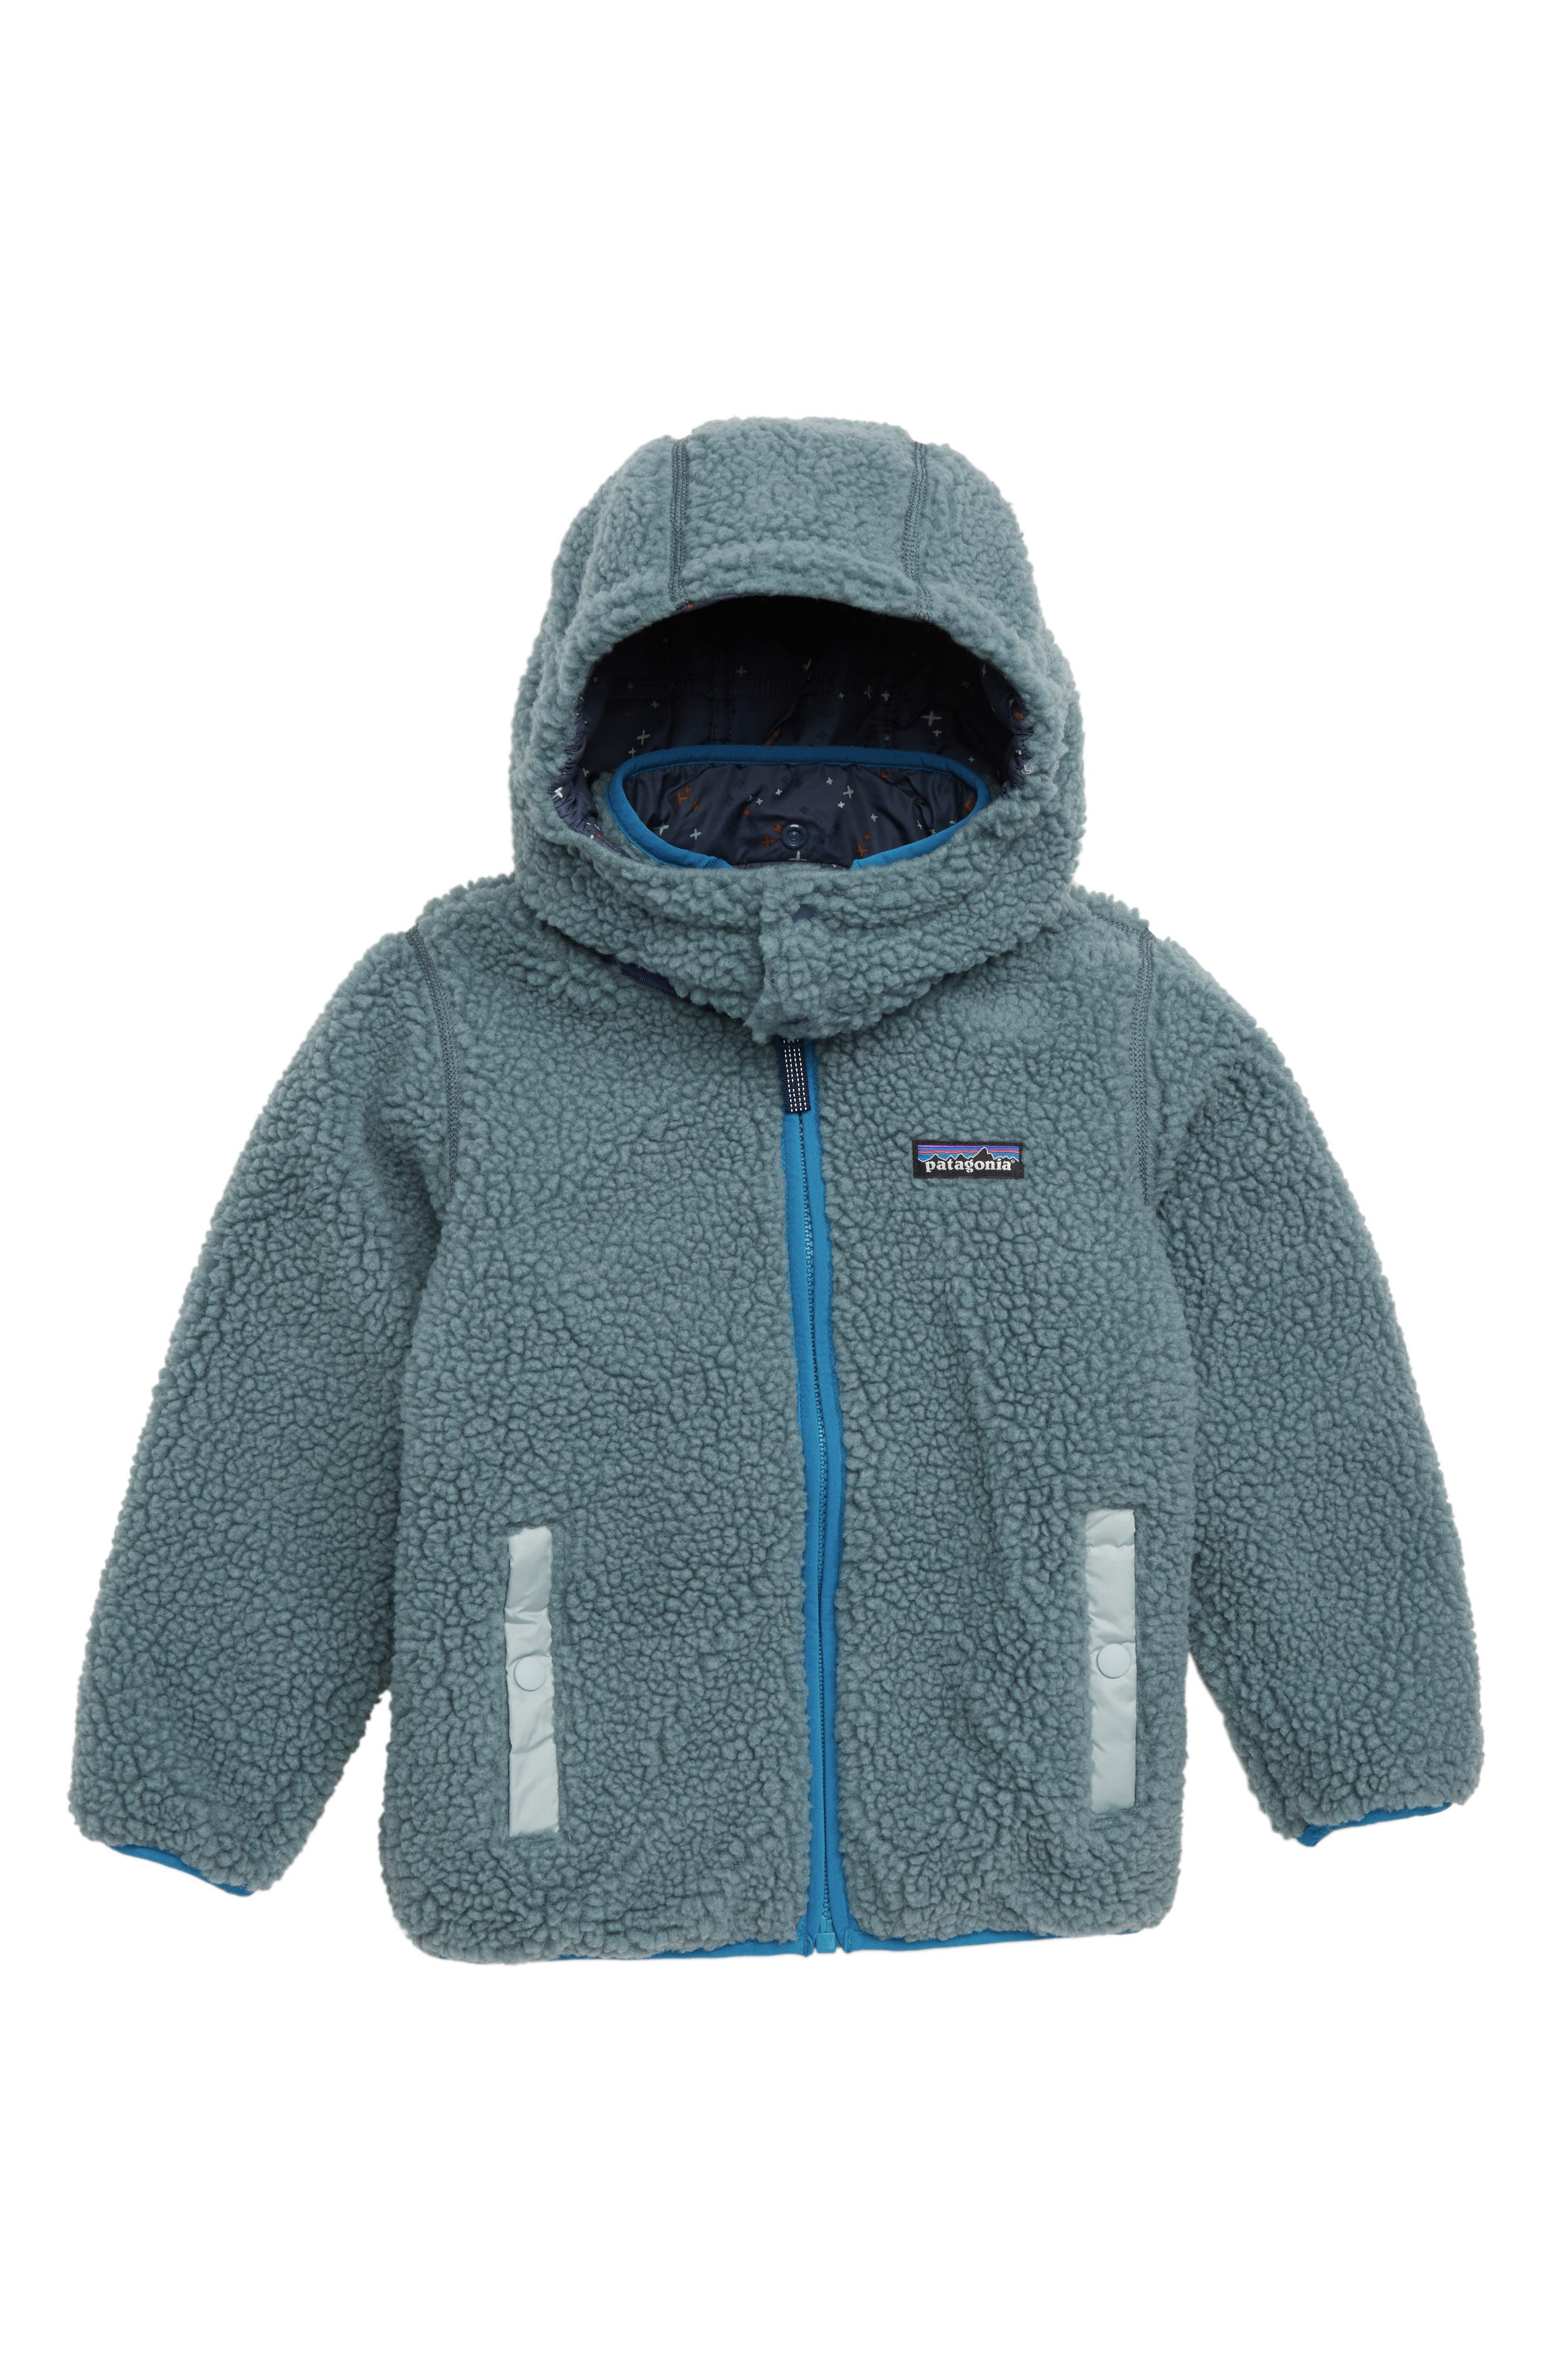 'Tribbles' Reversible Water Resistant Snow Jacket,                             Alternate thumbnail 2, color,                             CSCL CROSS STITCH NAVY